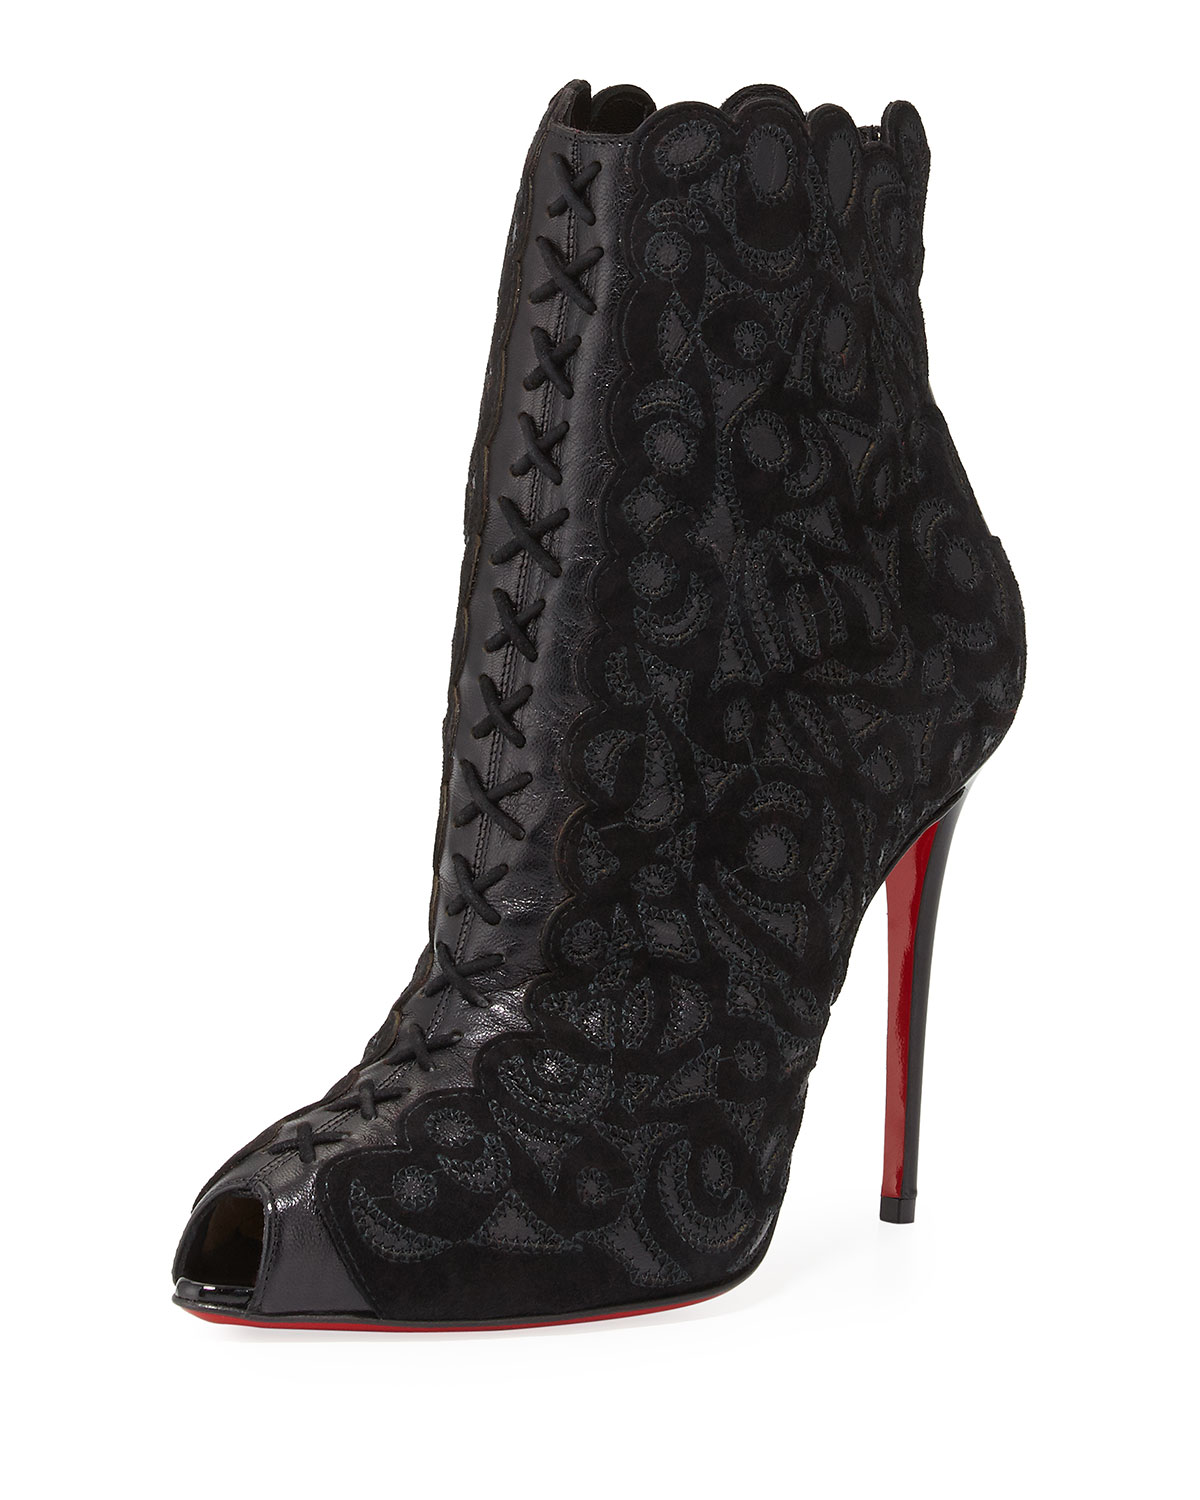 6963b47b2ec00 Christian Louboutin Indiboot Lace-Front Red Sole Bootie, Black | Bergdorf  Goodman